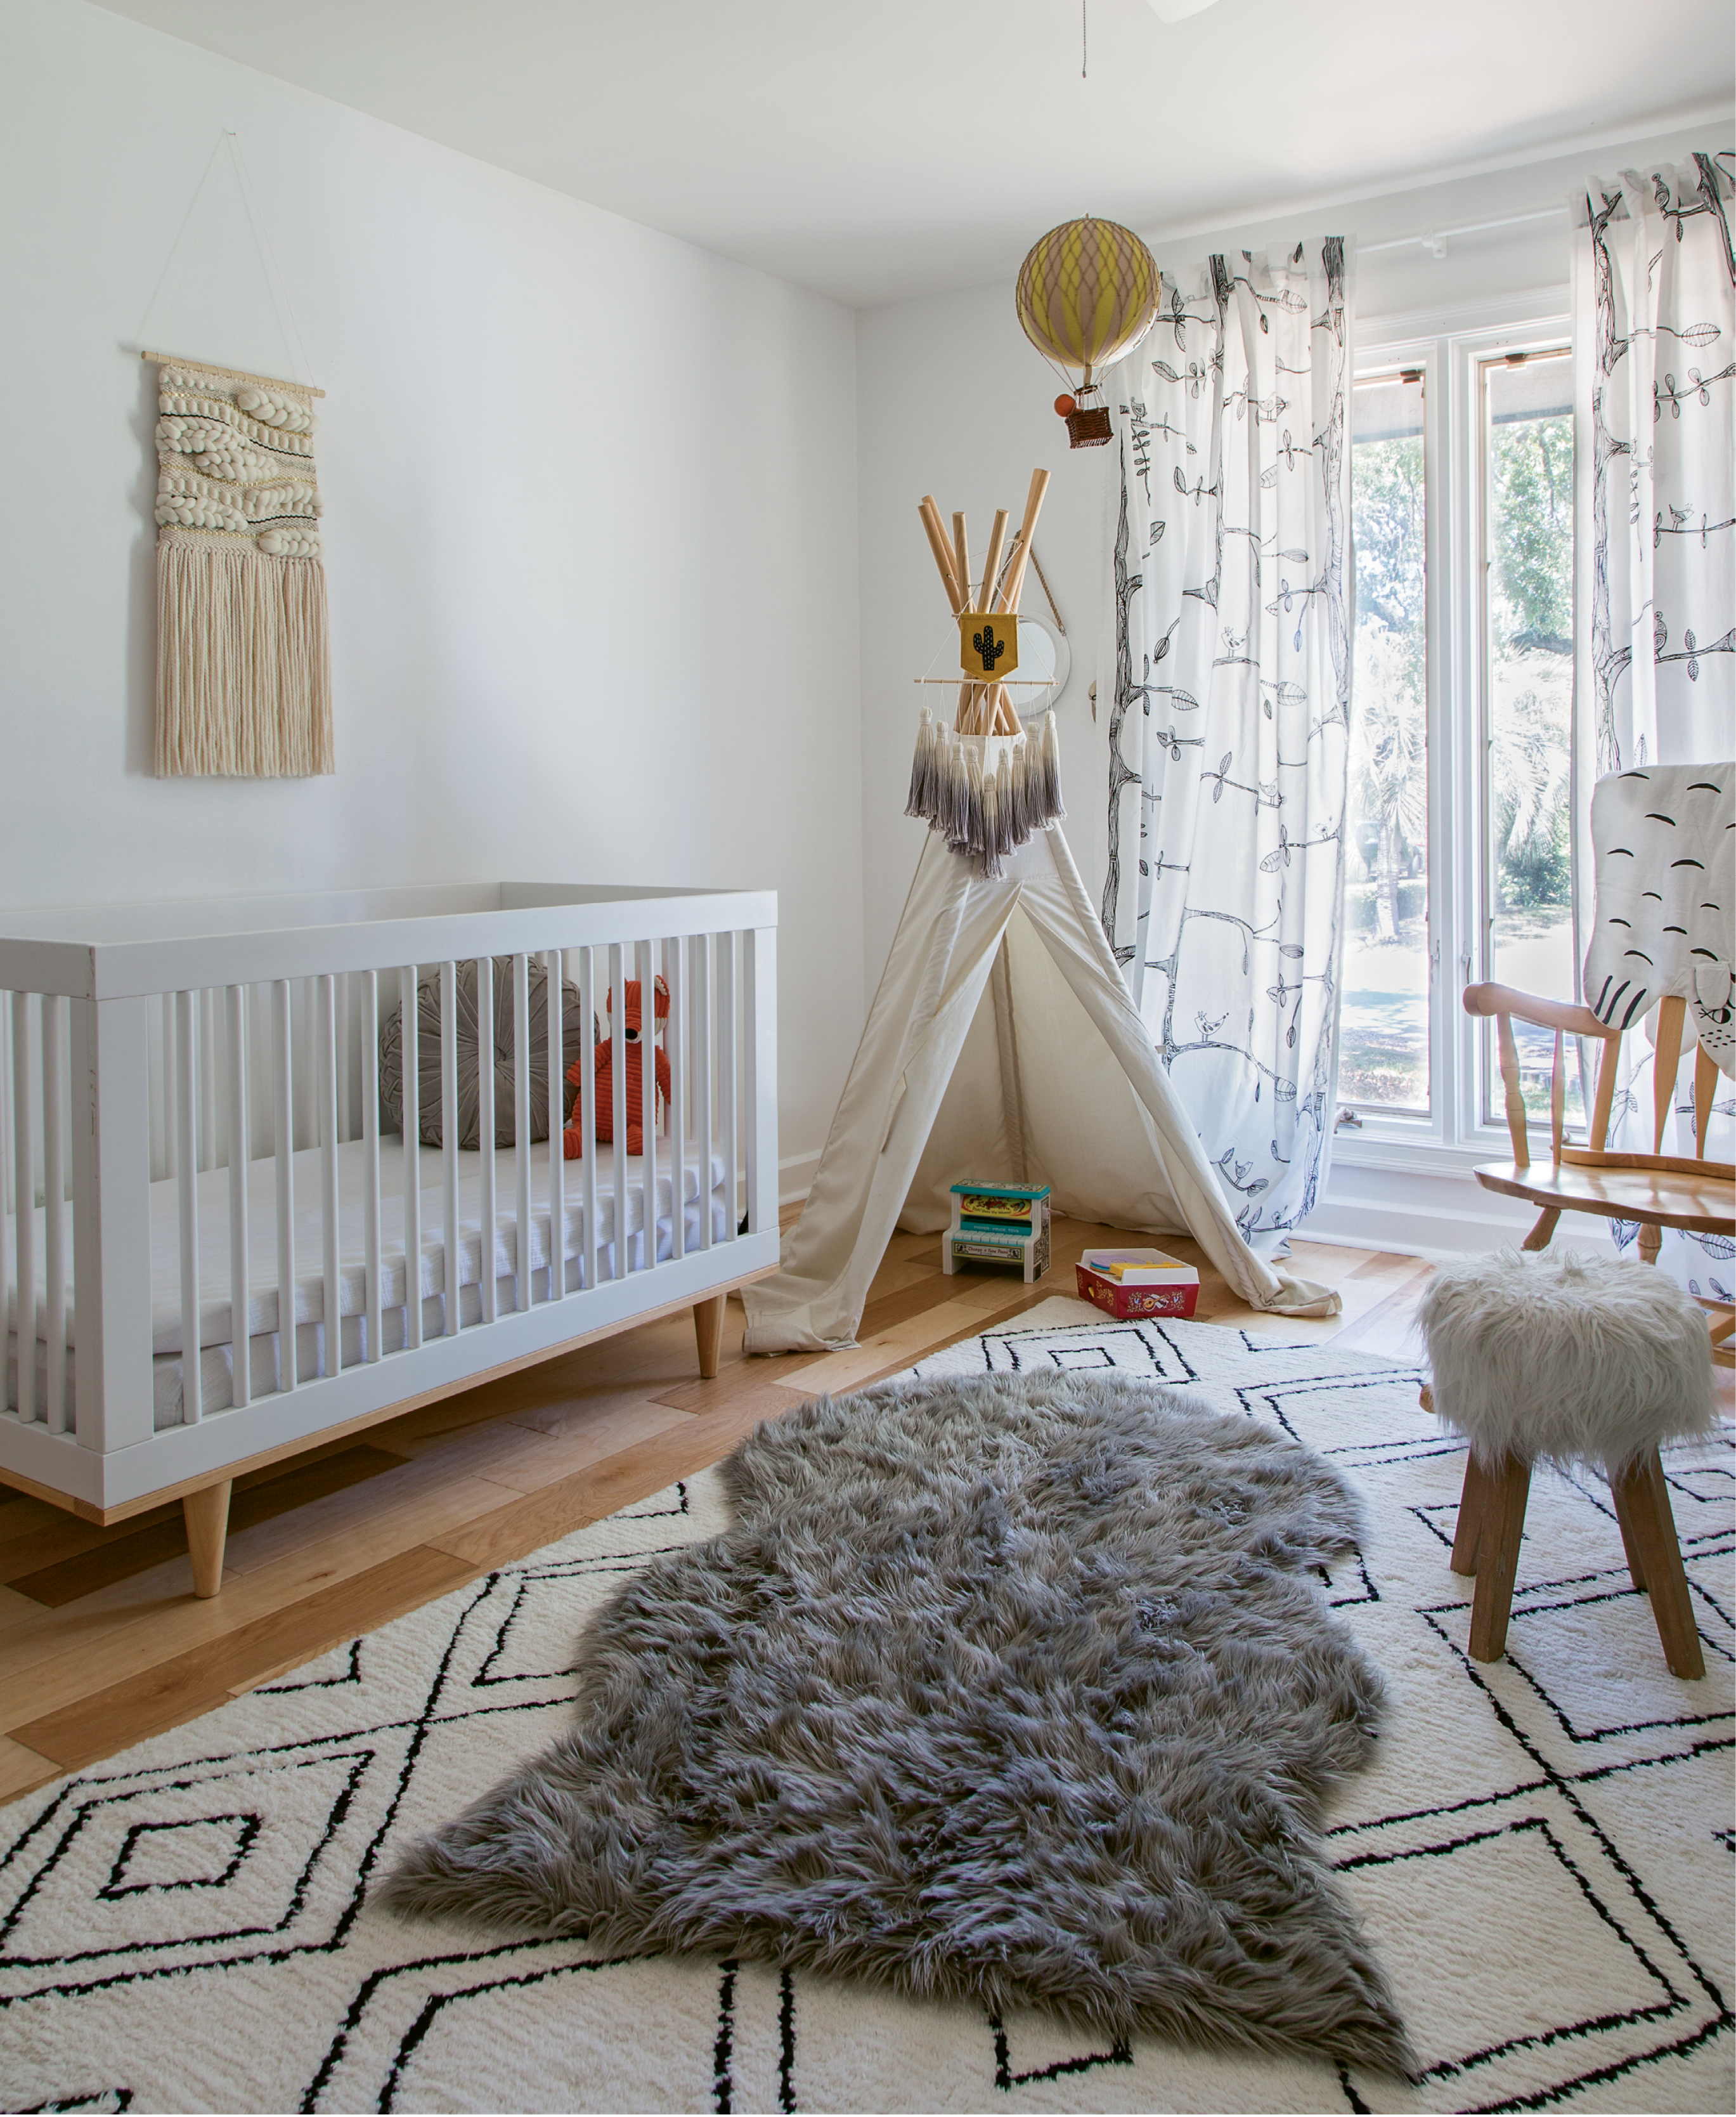 COOL KIDS: The nursery is playful and fun, but still feels sophisticated thanks to a black-and-white palette.